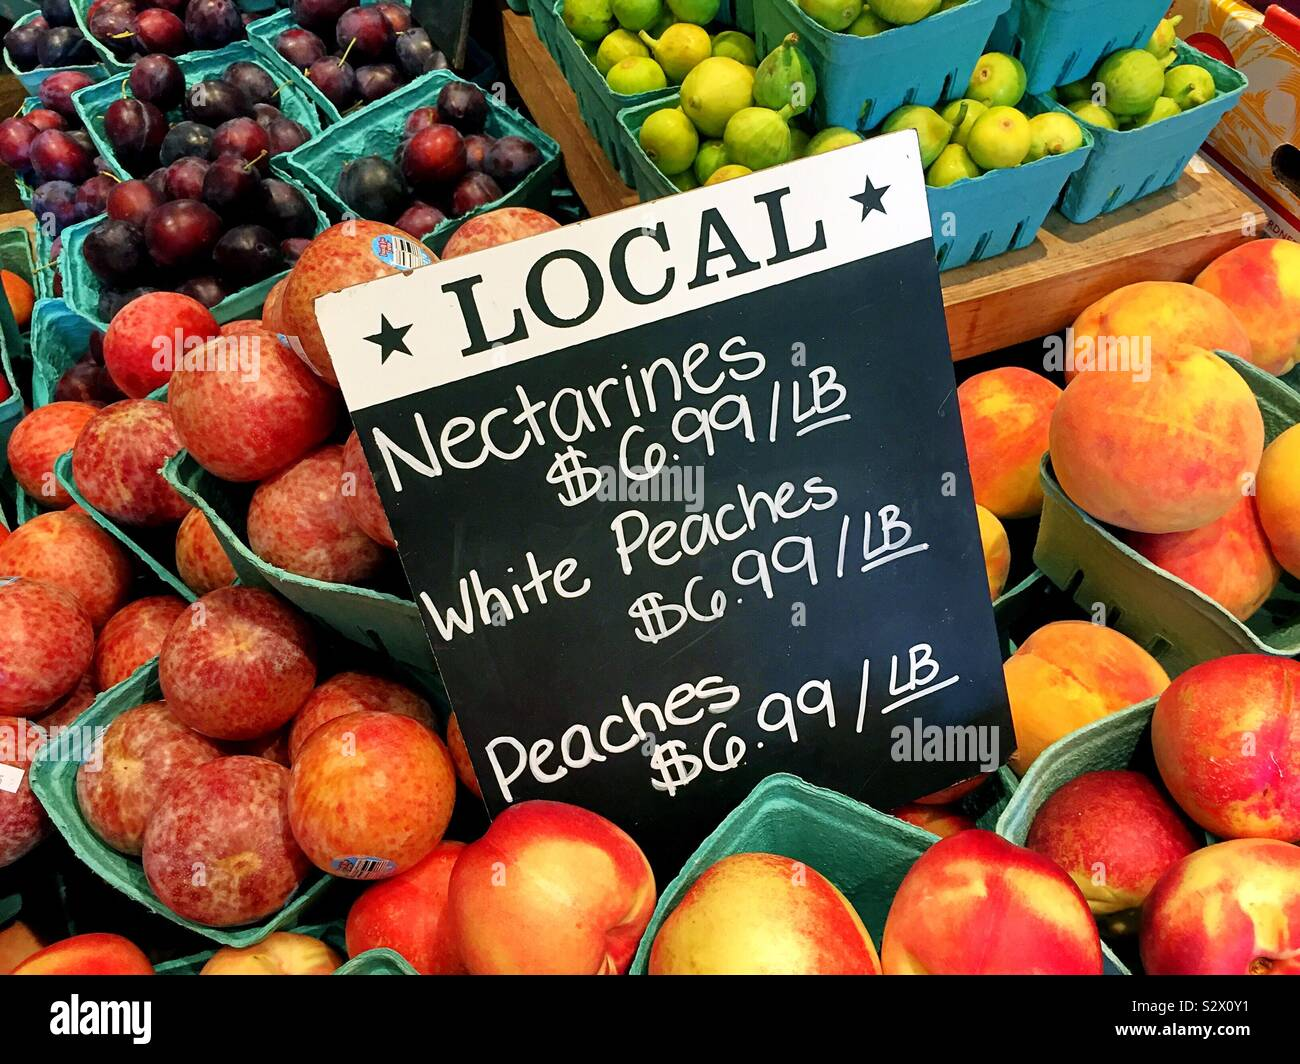 Local farm to table nectarines and peaches for sale in a farmers market, USA Stock Photo